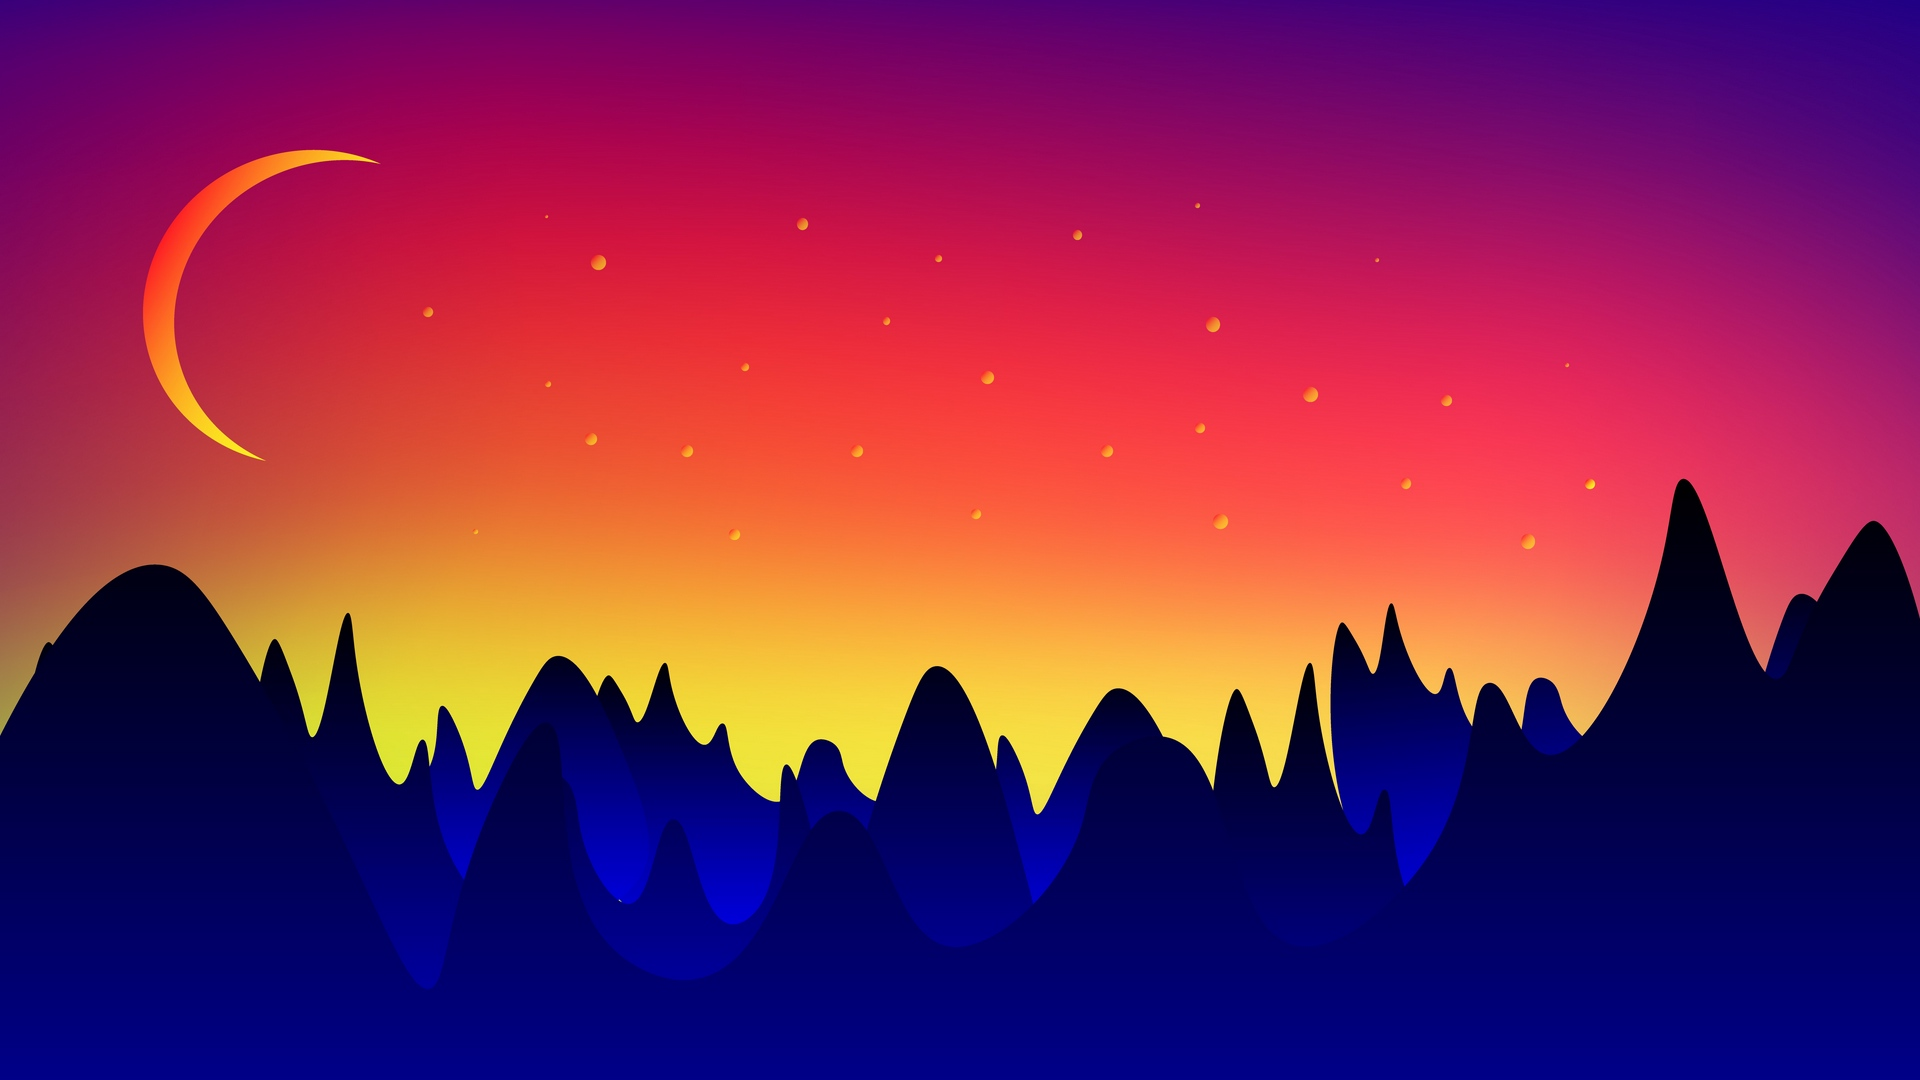 mountains moon landscape vector